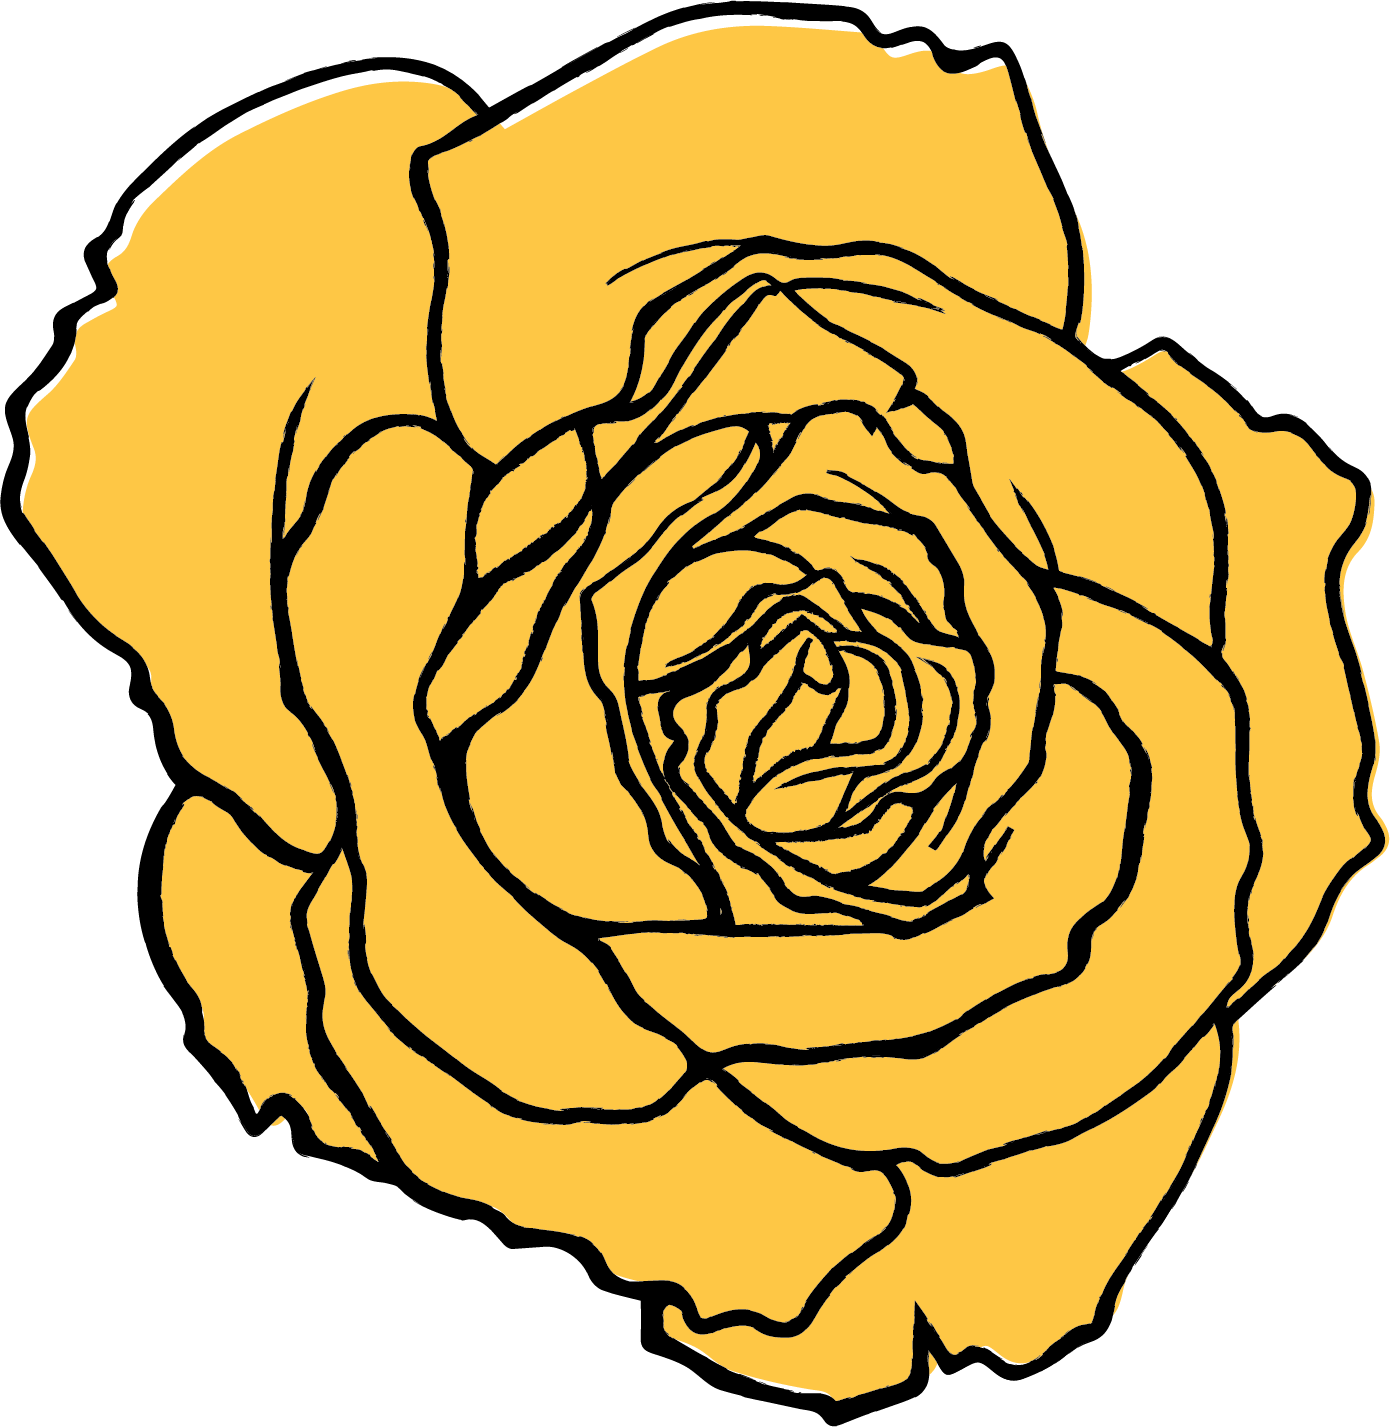 Yellow_Rose (3).png